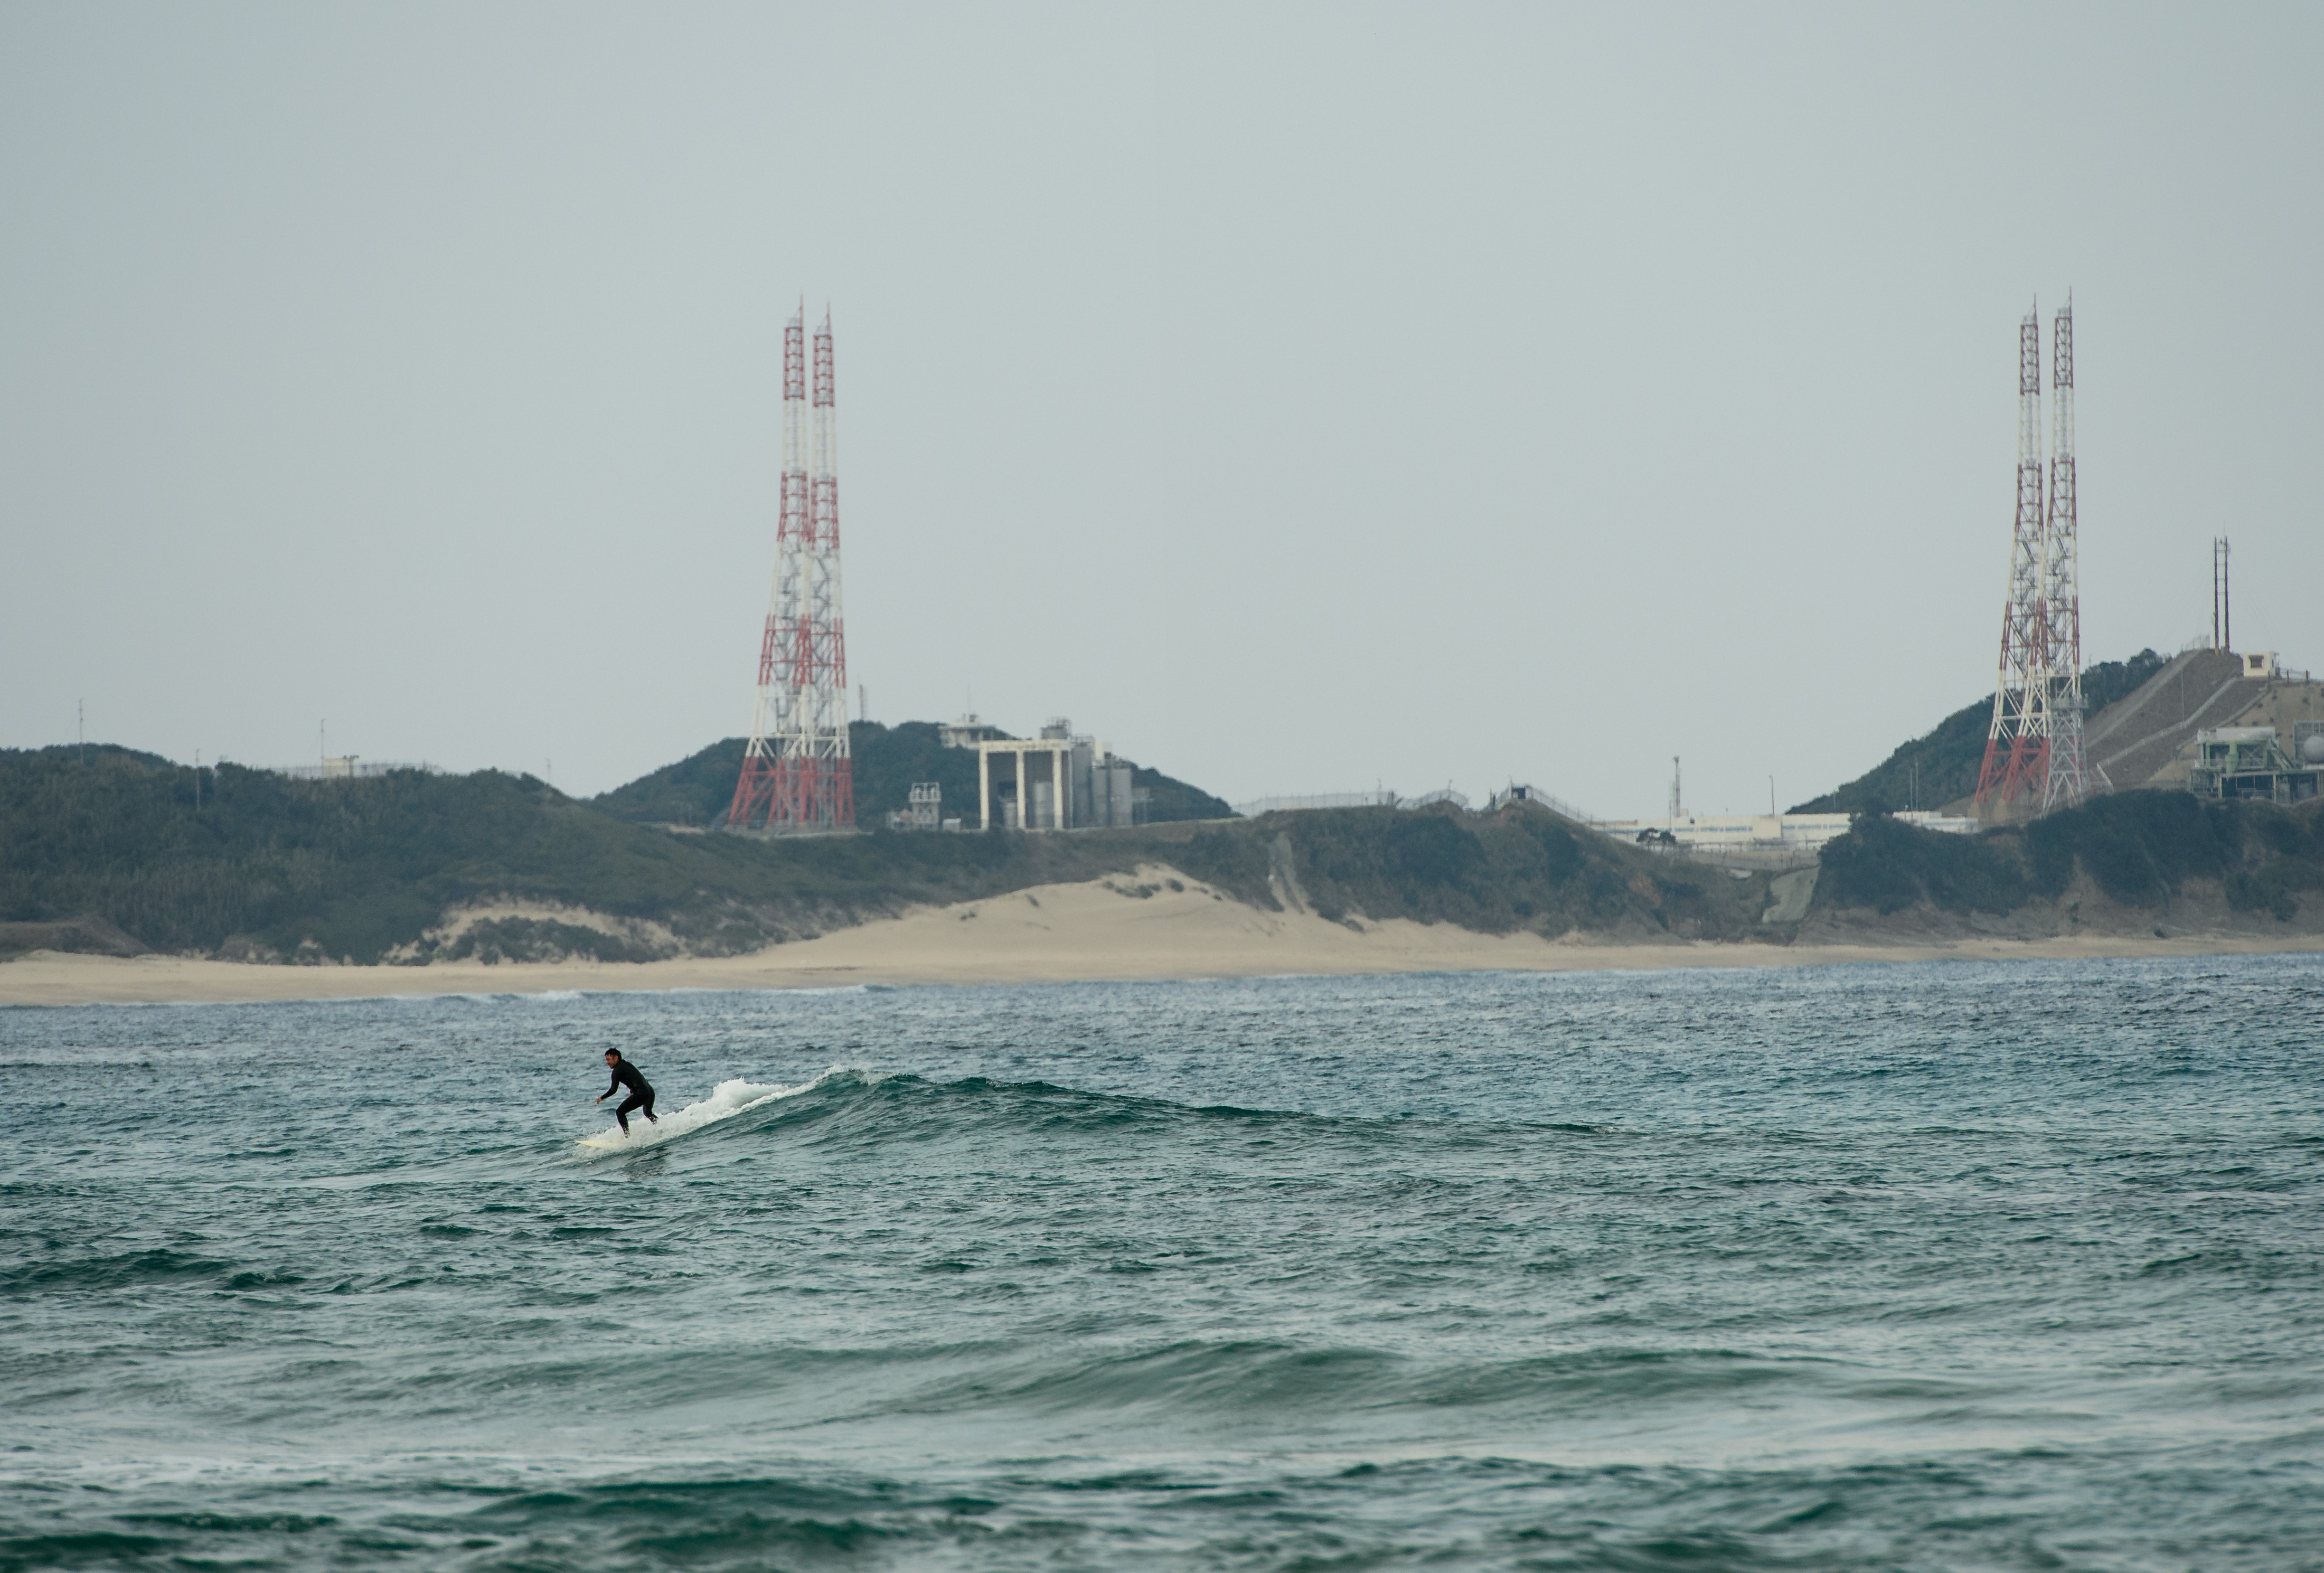 Surfing at Tanegashima Space Center